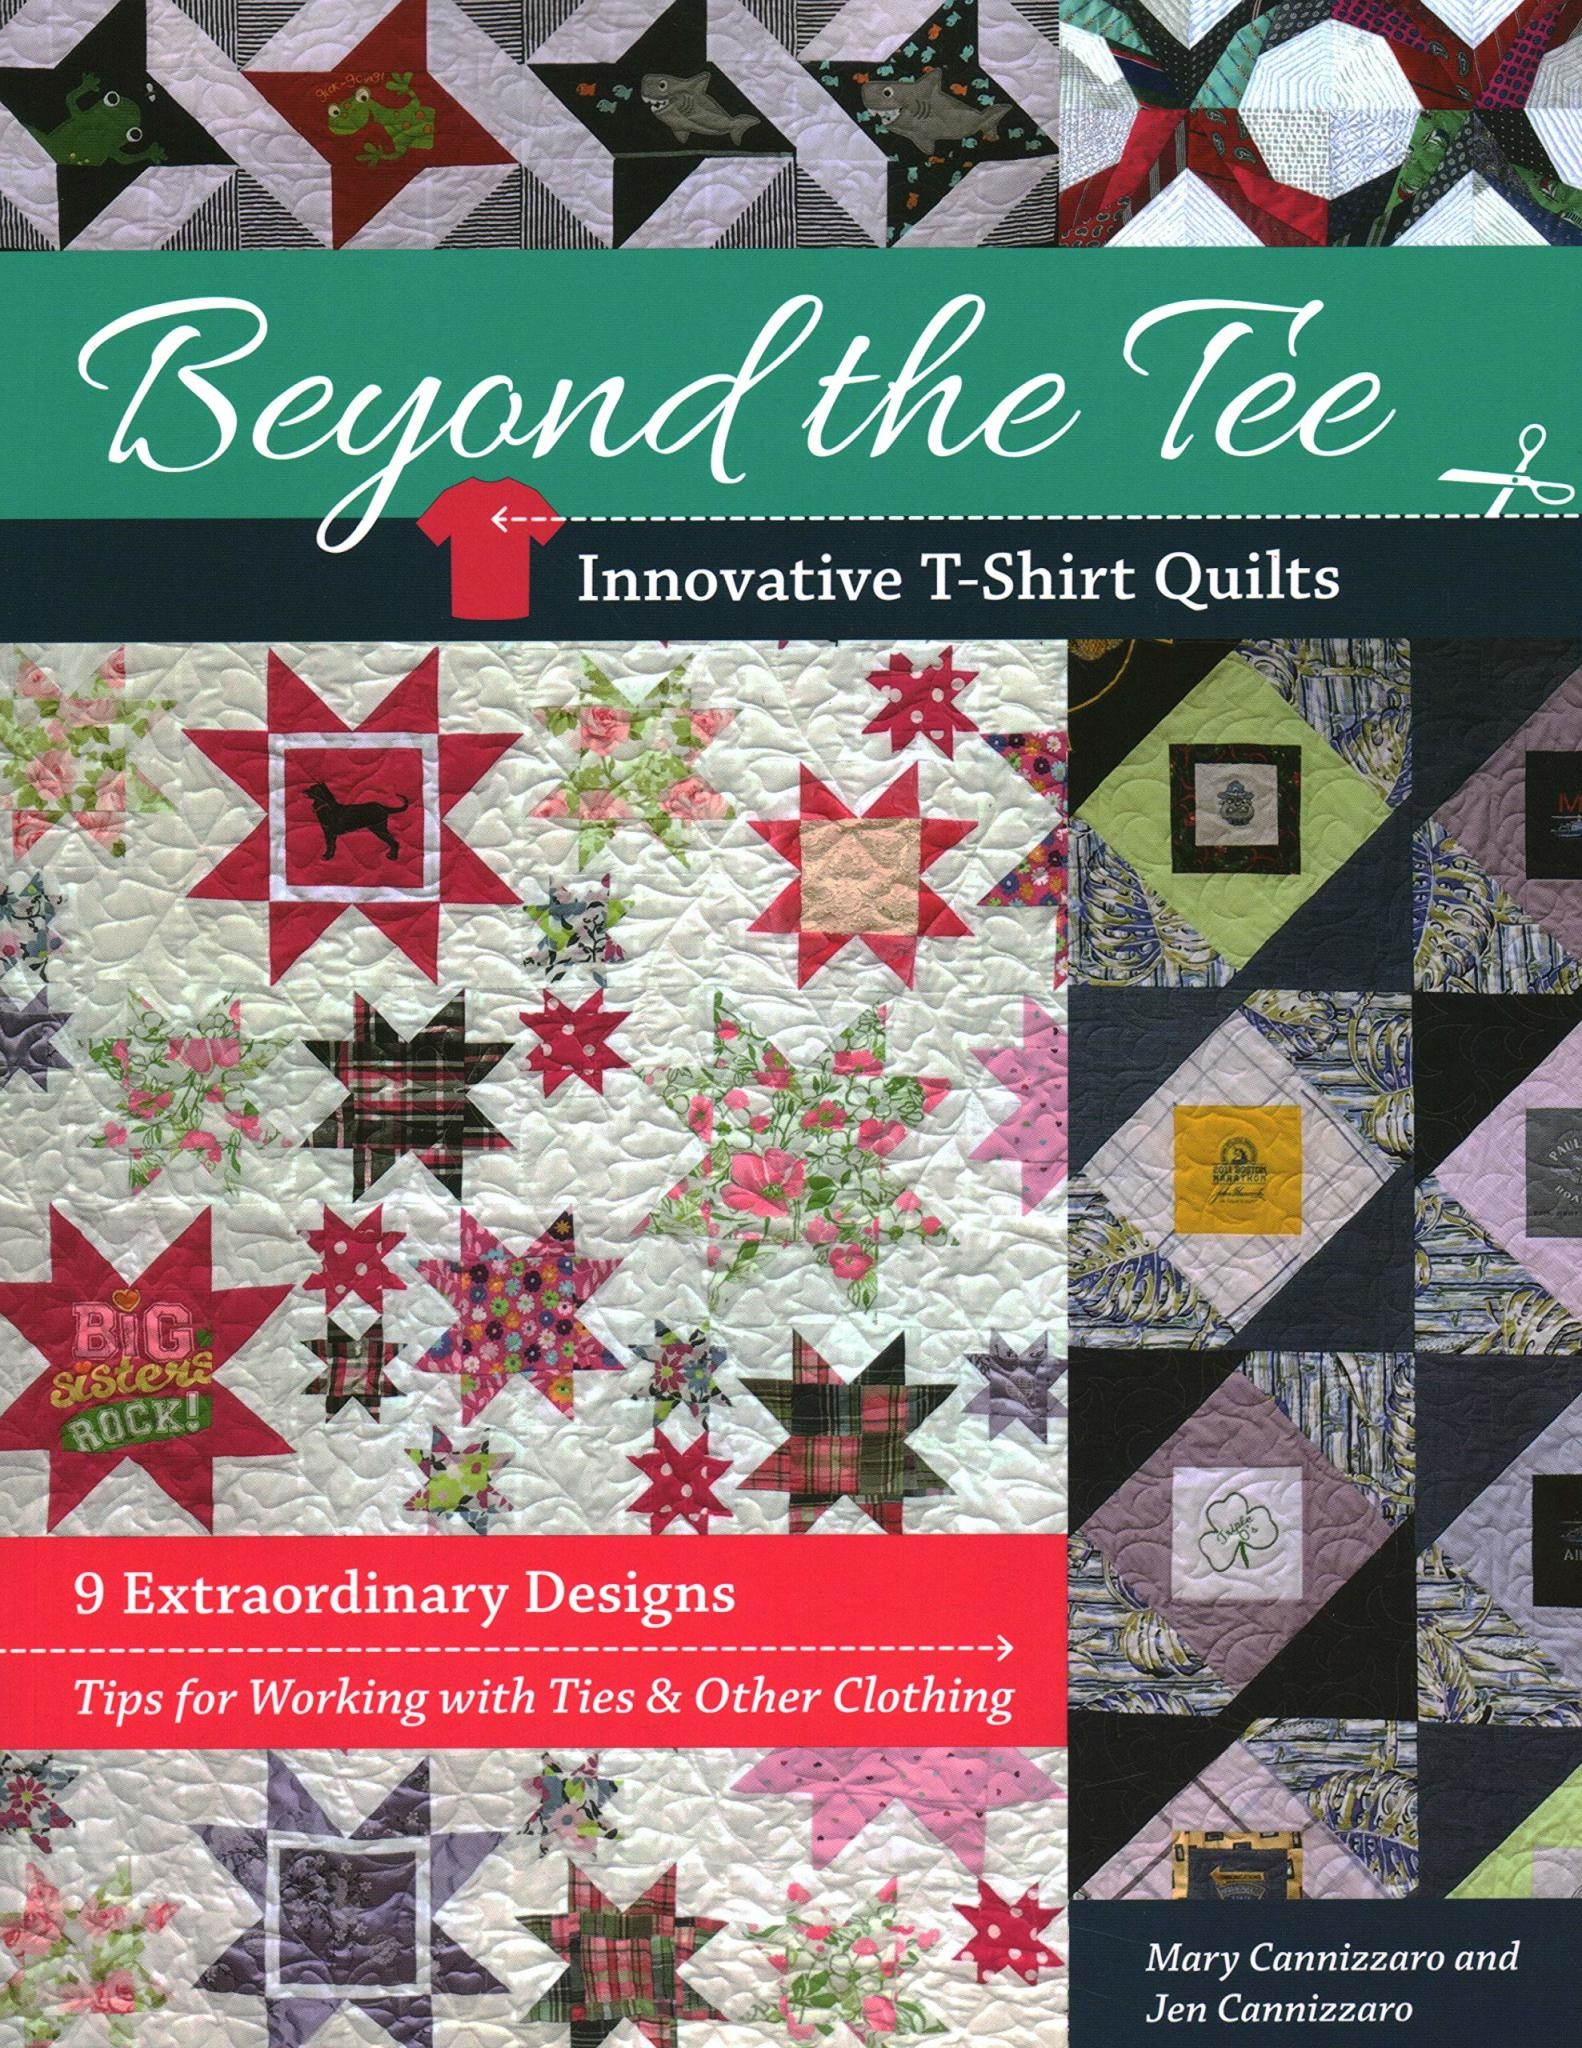 C&T PUBLISHING BEYOND THE TEE (Innovative T-shirt quilts)